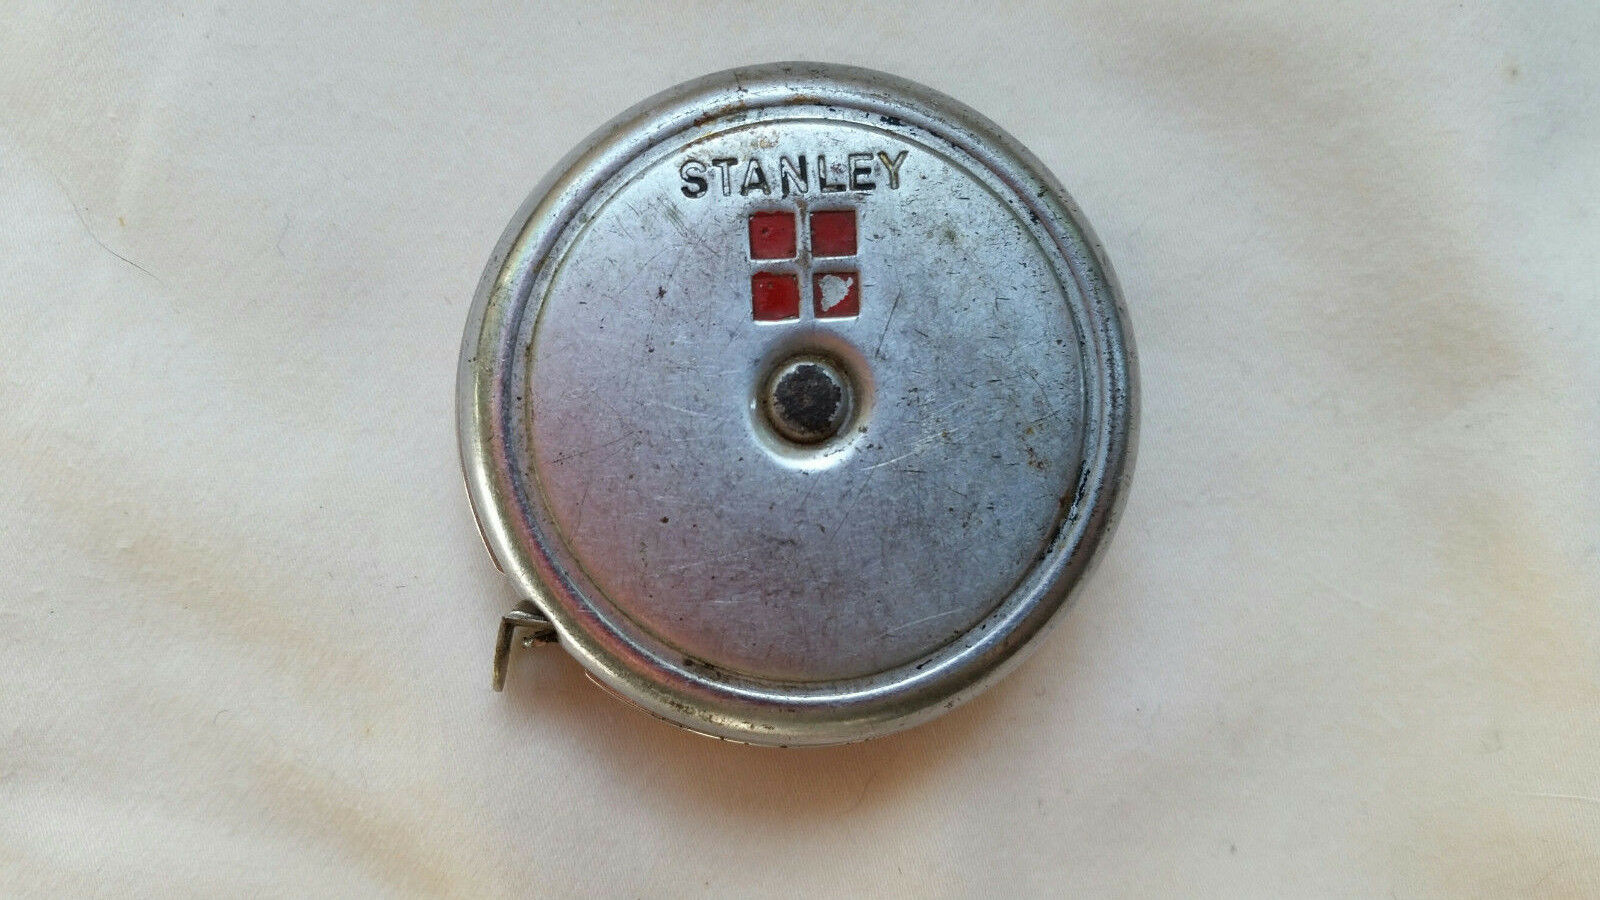 Stanley  Tape Measure No.1166 Satin Chromium Finish  large discount